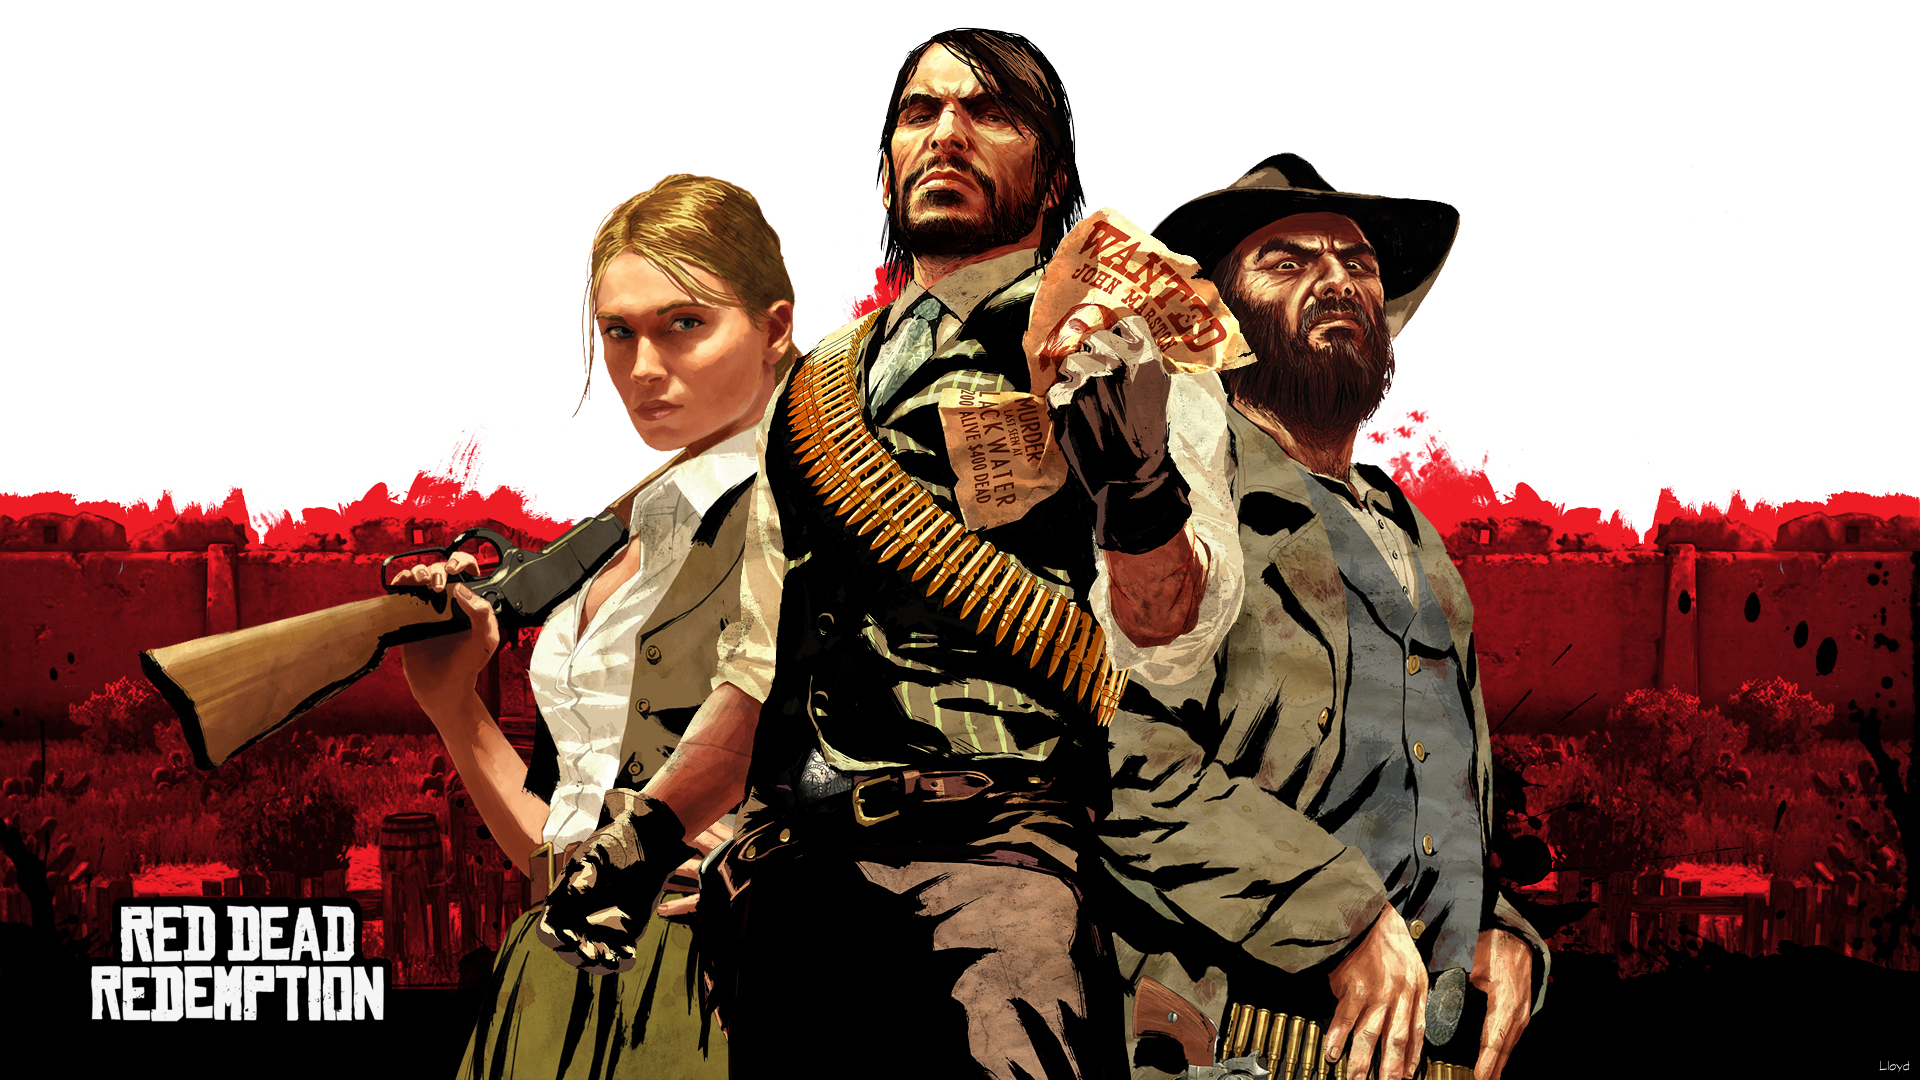 EZPZ Owner Picks Red Dead Redemption as favorite game all-time